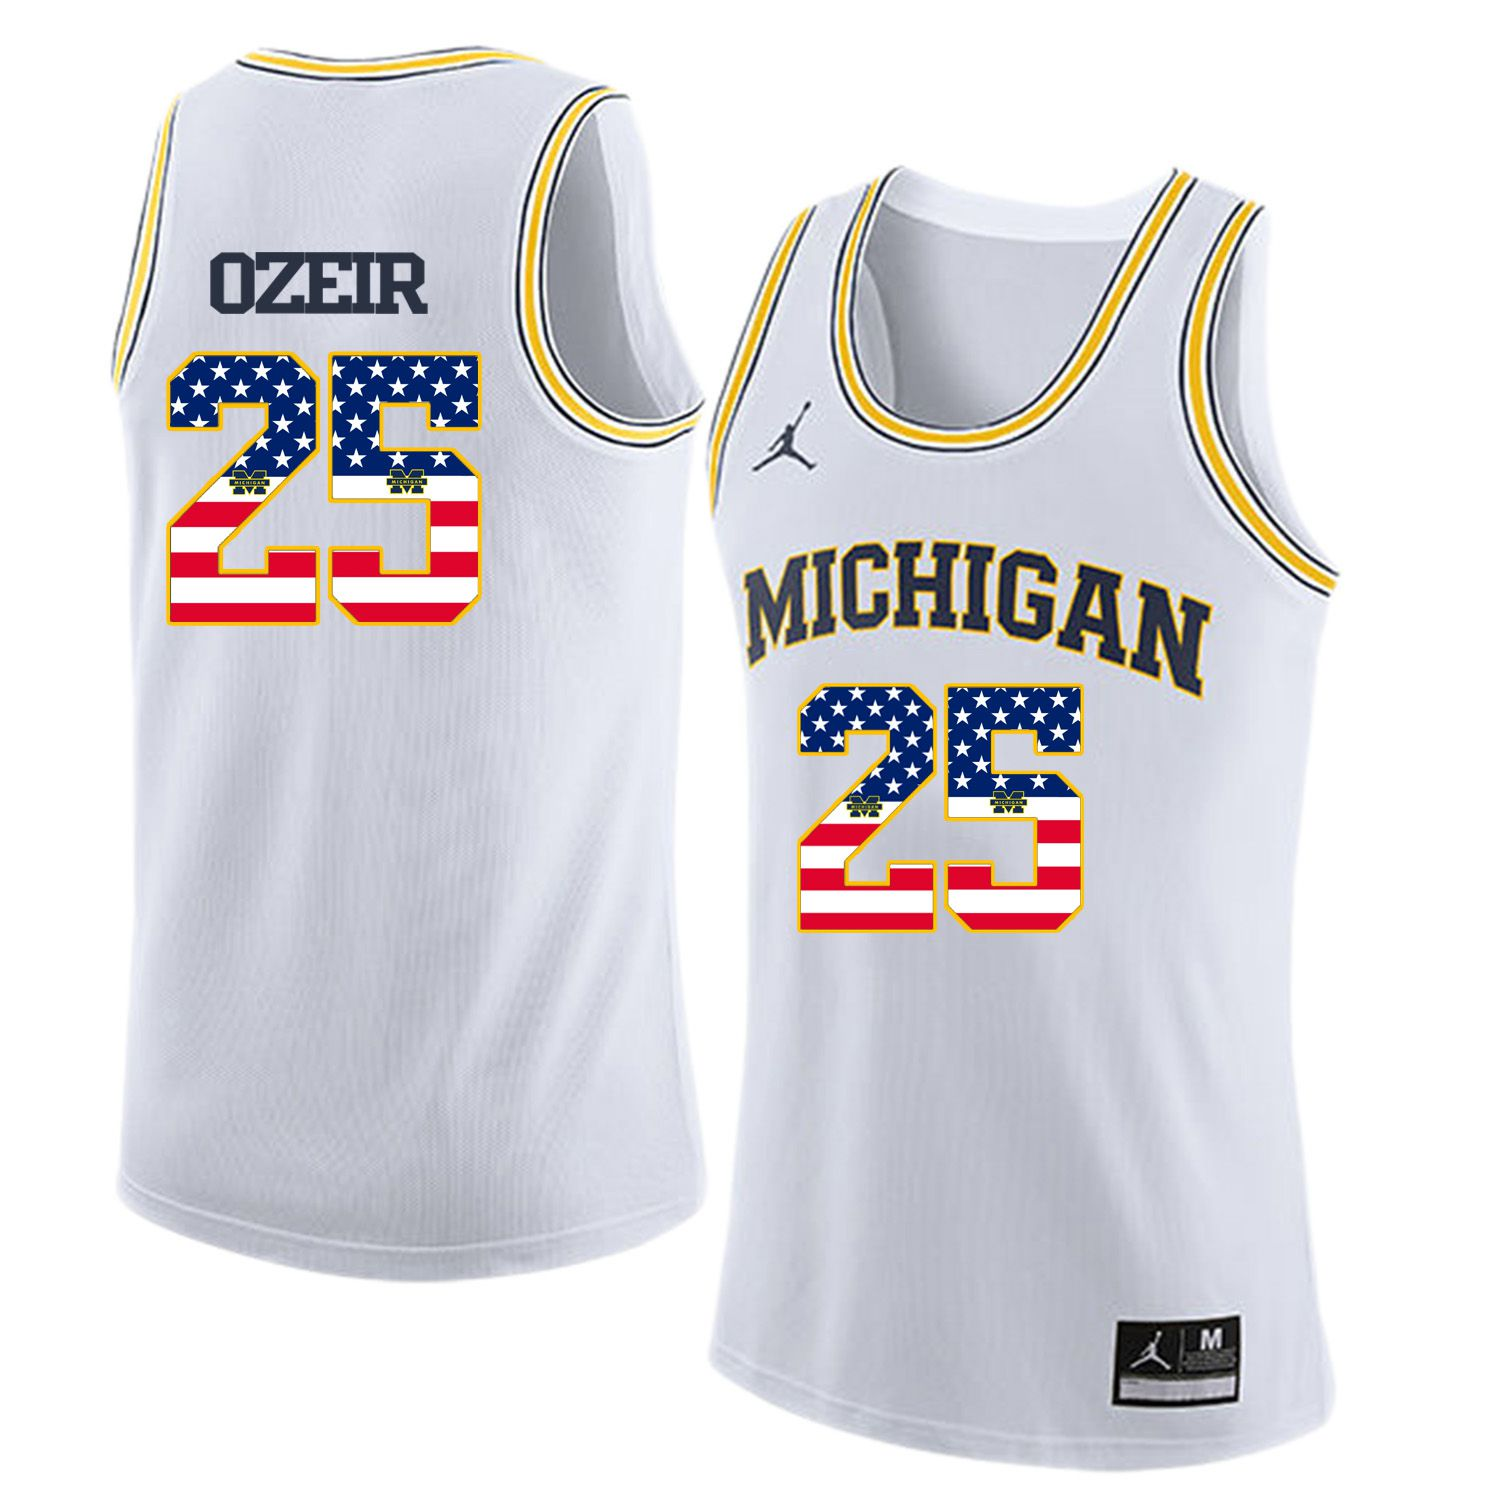 Men Jordan University of Michigan Basketball White 25 Ozeir Flag Customized NCAA Jerseys